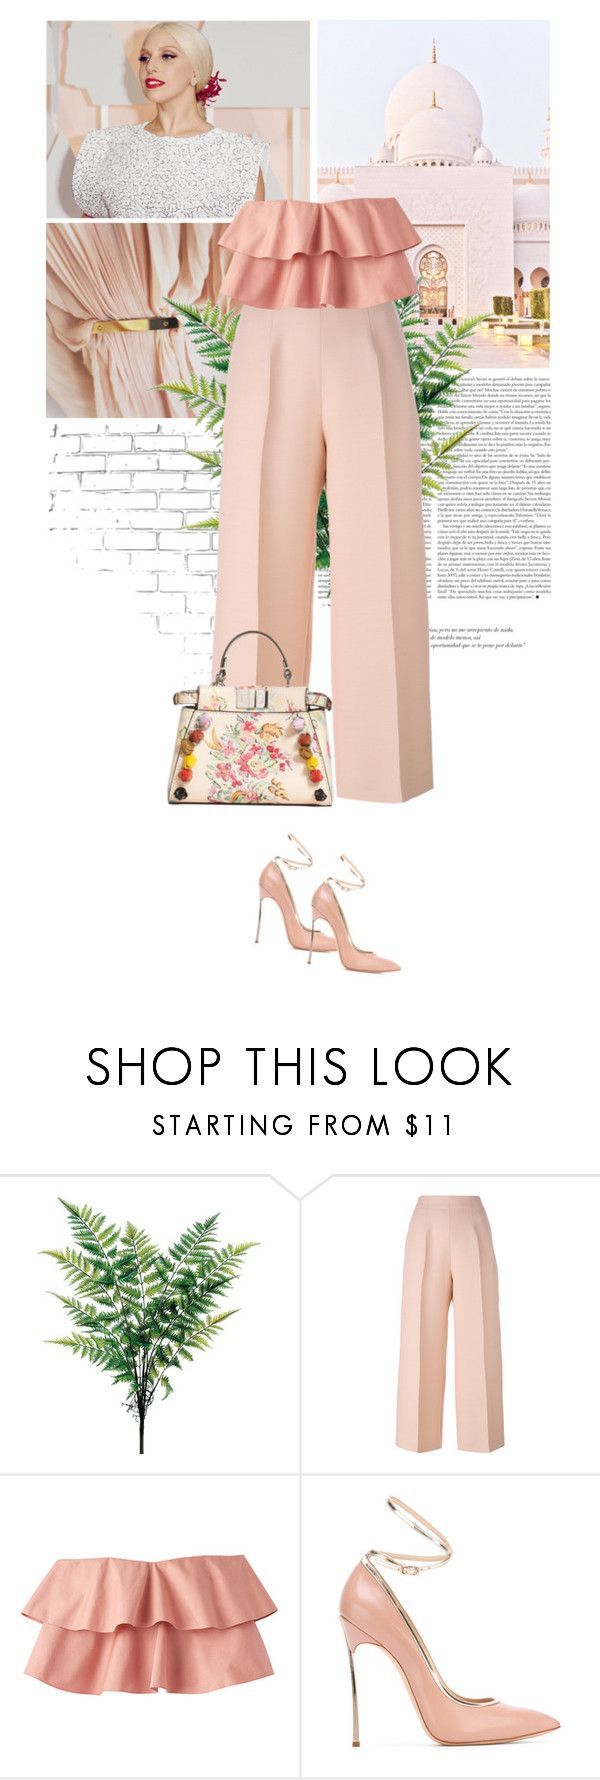 """""""soft.pink."""" by eve-angermayer ❤ liked on Polyvore featuring WALL, GET LOST, Fendi and Casadei"""